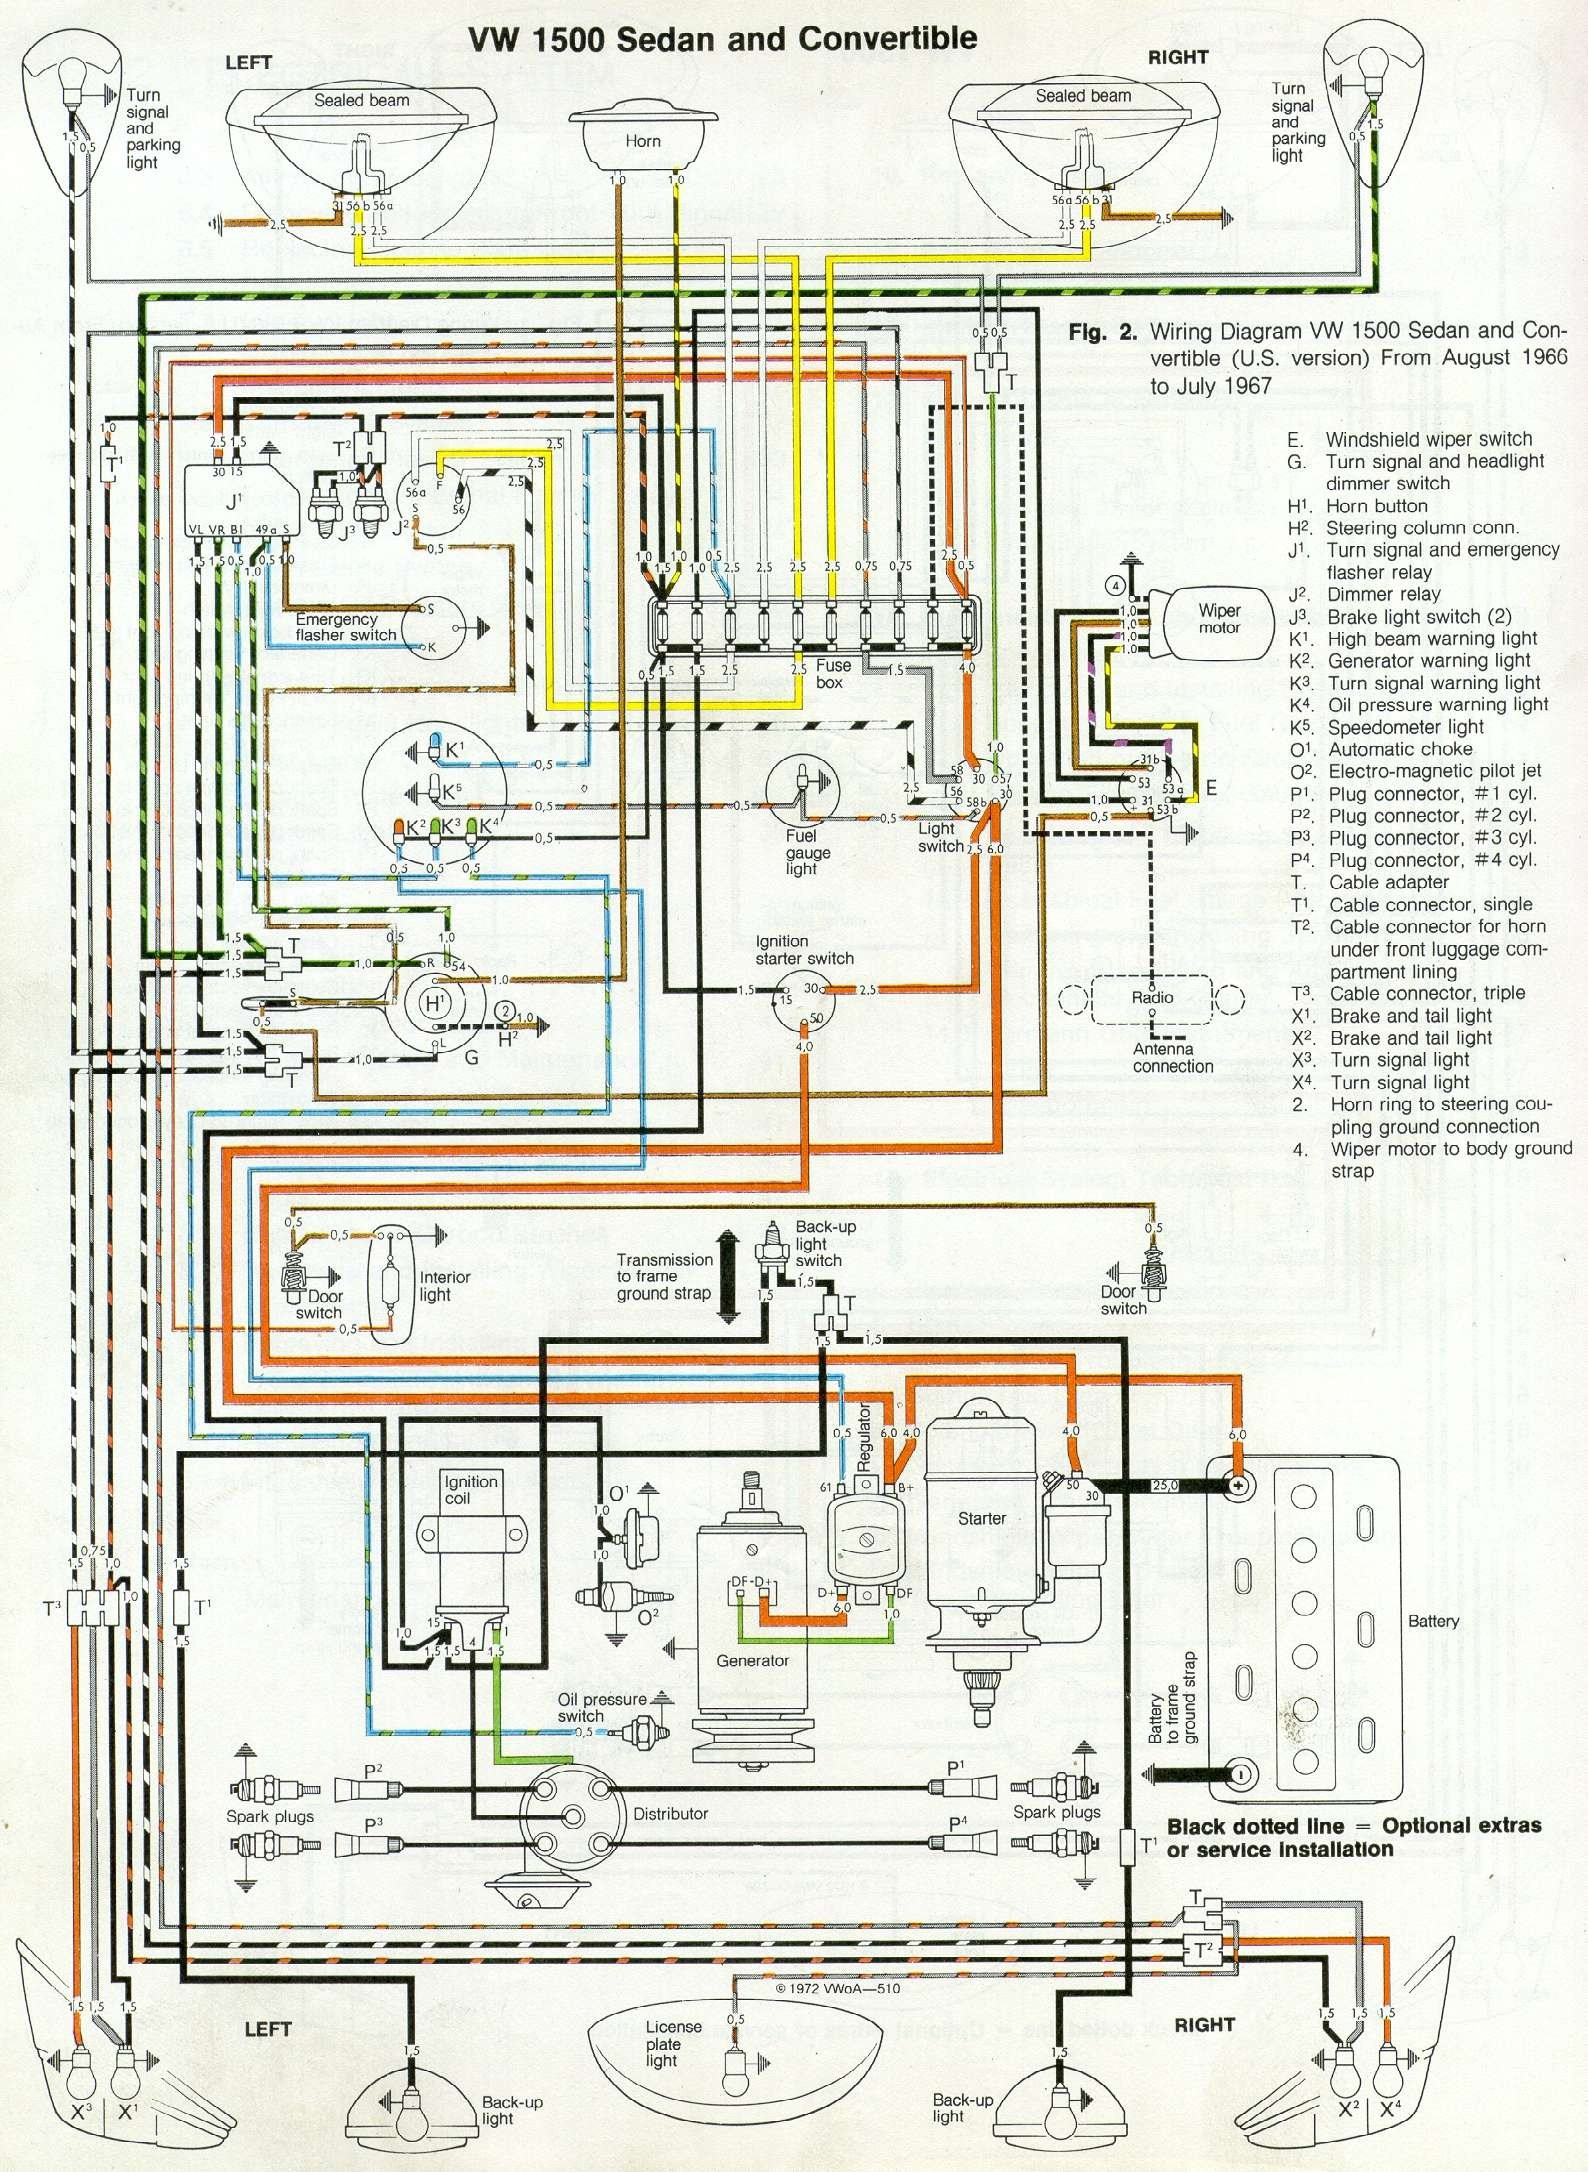 Vw Beetle Wiring - Data Wiring Diagram on 1970 chevelle air conditioning, 1970 chevelle clock, 1970 chevelle air cleaner, 1970 chevelle oil sending unit, 1970 chevelle transmission, 1970 chevelle carburetor, 1970 chevelle schematics, 1970 chevelle fuel gauge wiring, 1970 chevelle wiring blueprints, 1970 chevelle lights, 1967 chevelle horn diagram, chevelle ac diagram, 67 chevelle horn diagram, 1970 chevelle alternator, 1970 chevelle neutral safety switch, 1970 chevelle crankshaft, 1970 chevelle ss fender emblem location, 1970 chevelle tires, 1970 chevelle wiring harness, 1970 chevelle cowl induction relay location,